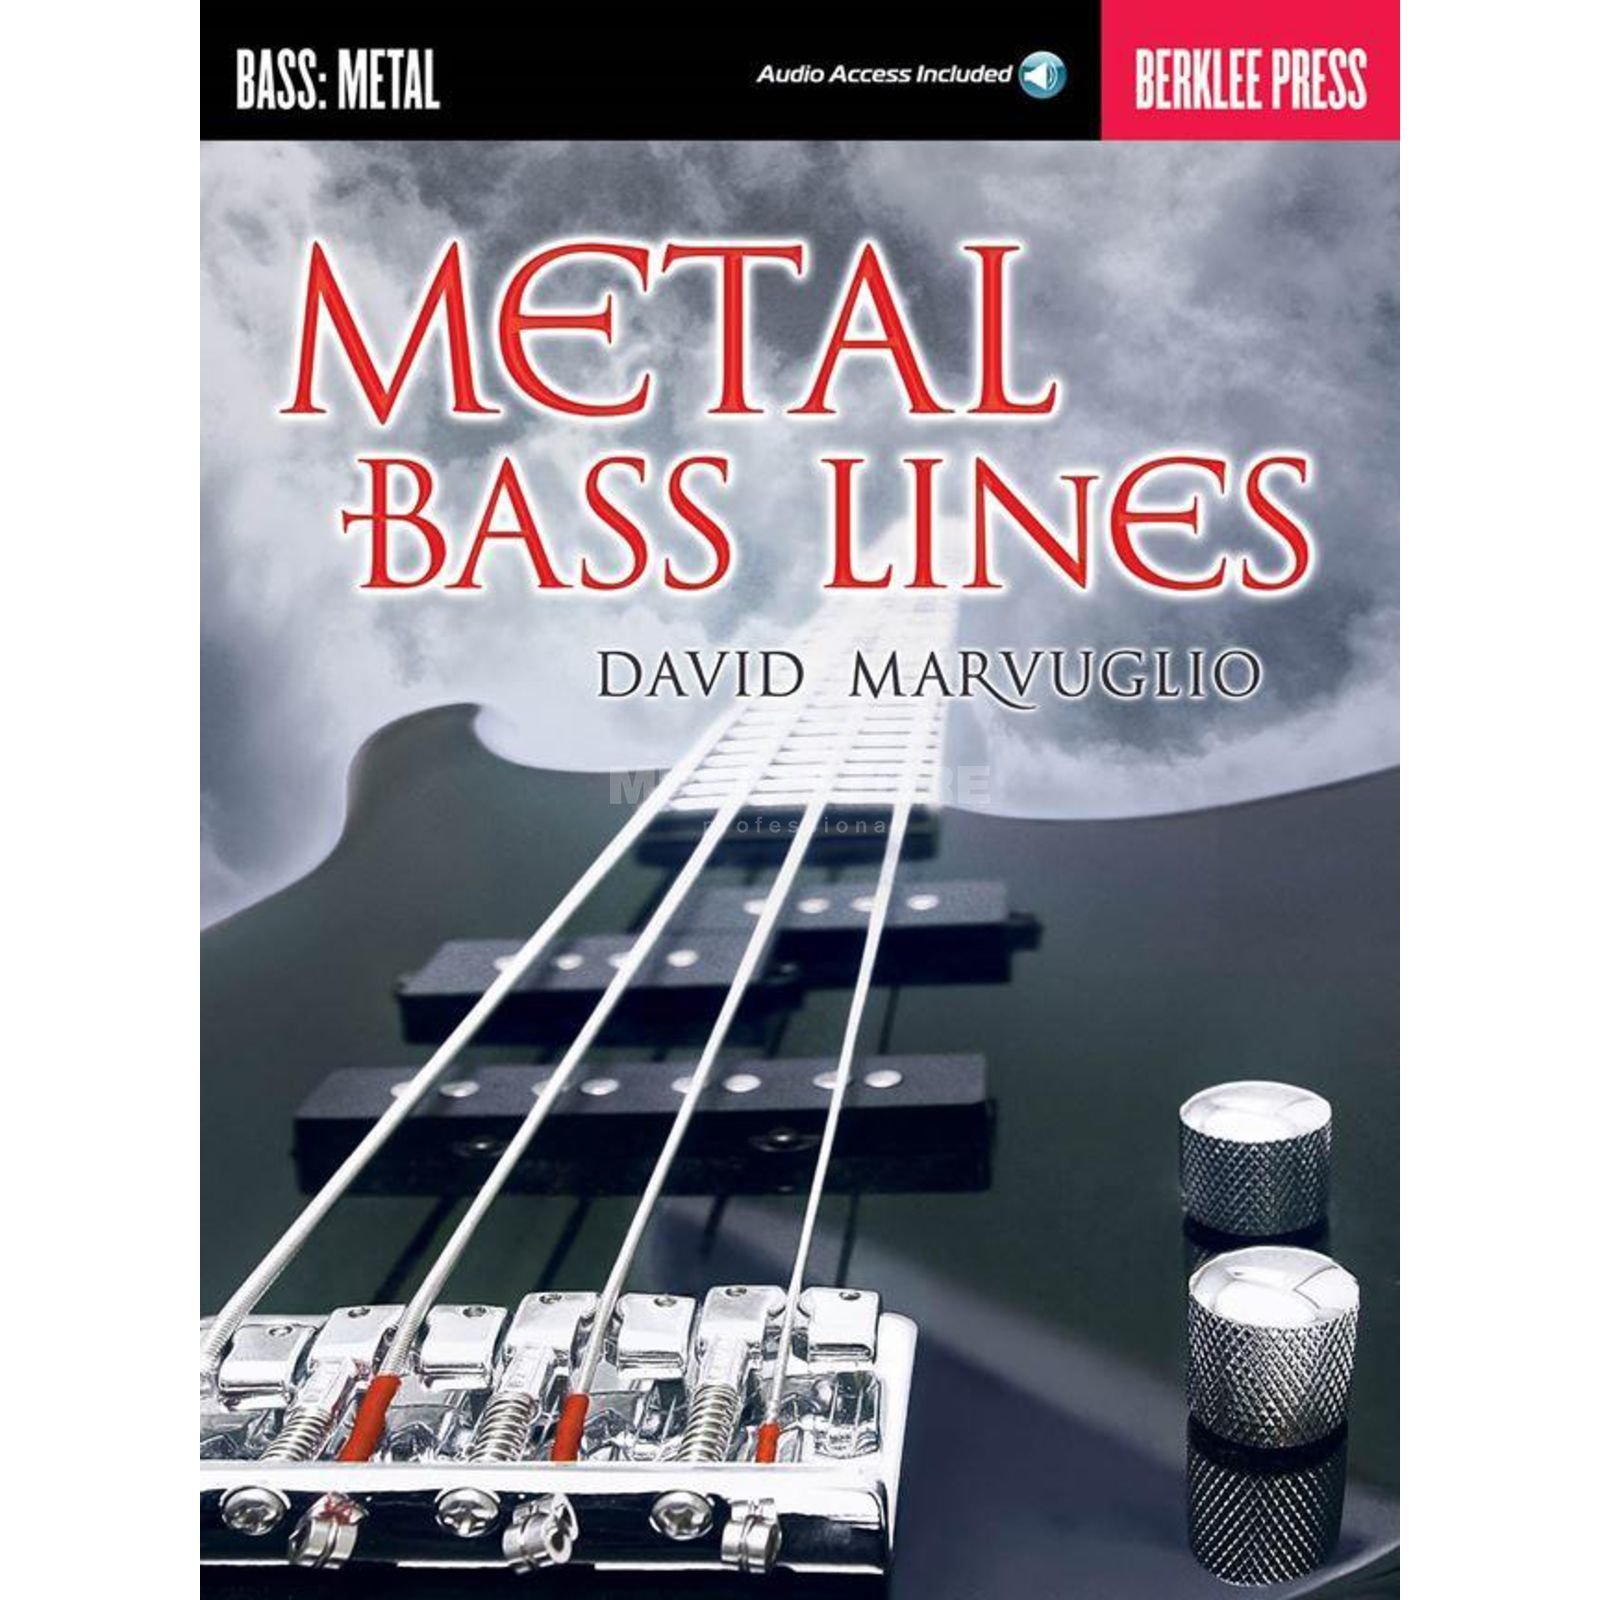 Berklee Press Metal Bass Lines David Marvuglio Produktbild